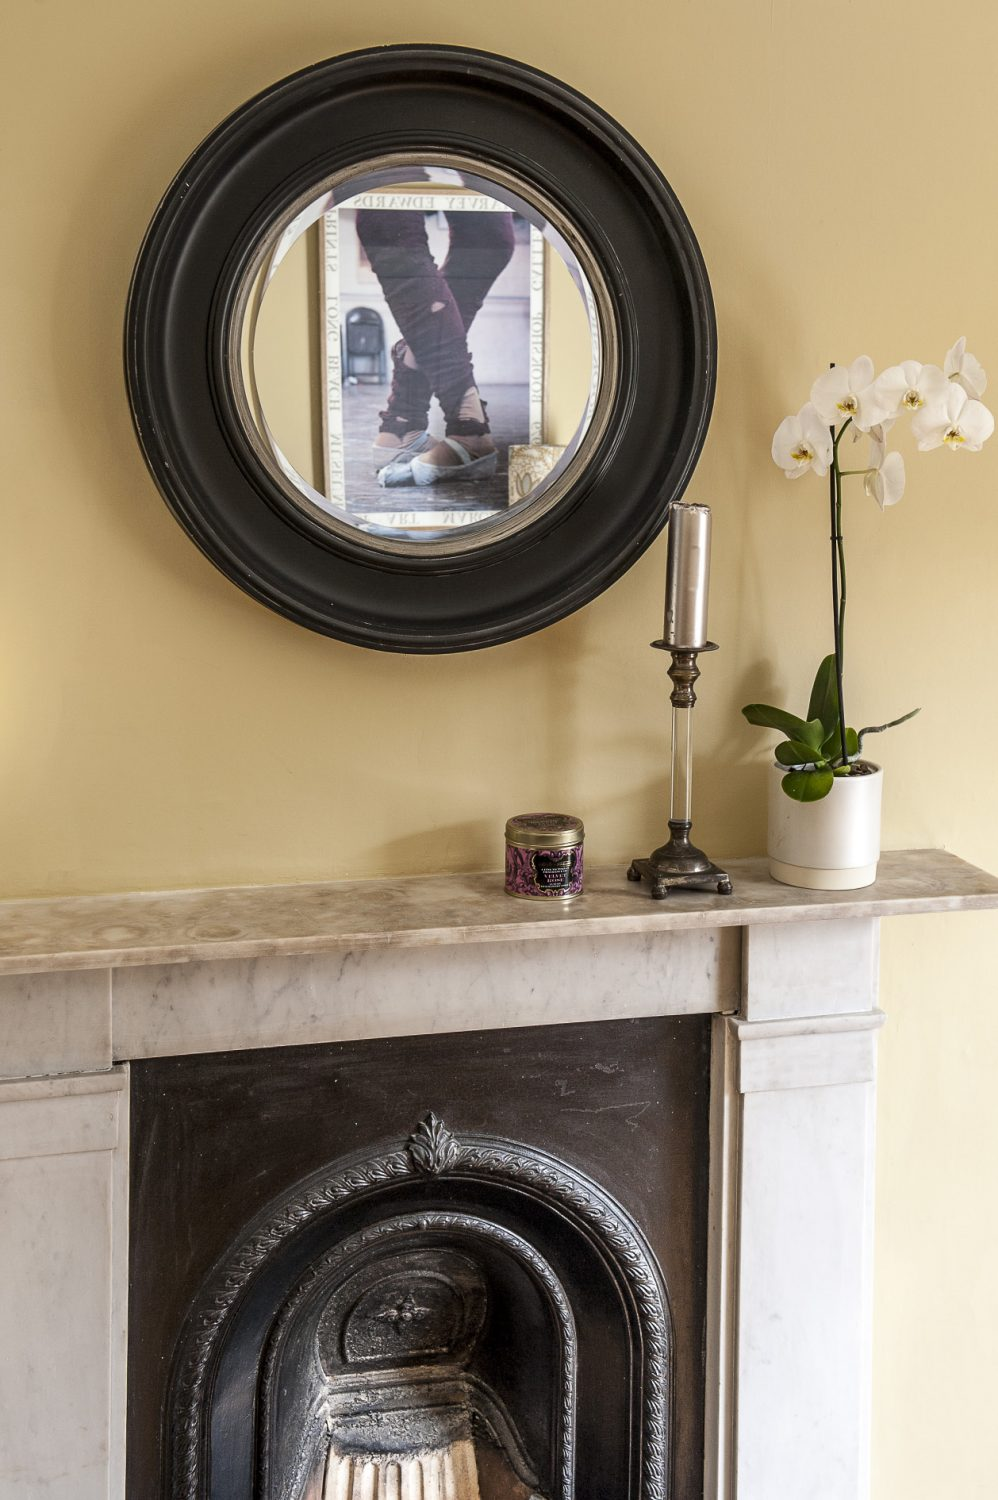 The marble fireplace in one of the spare rooms